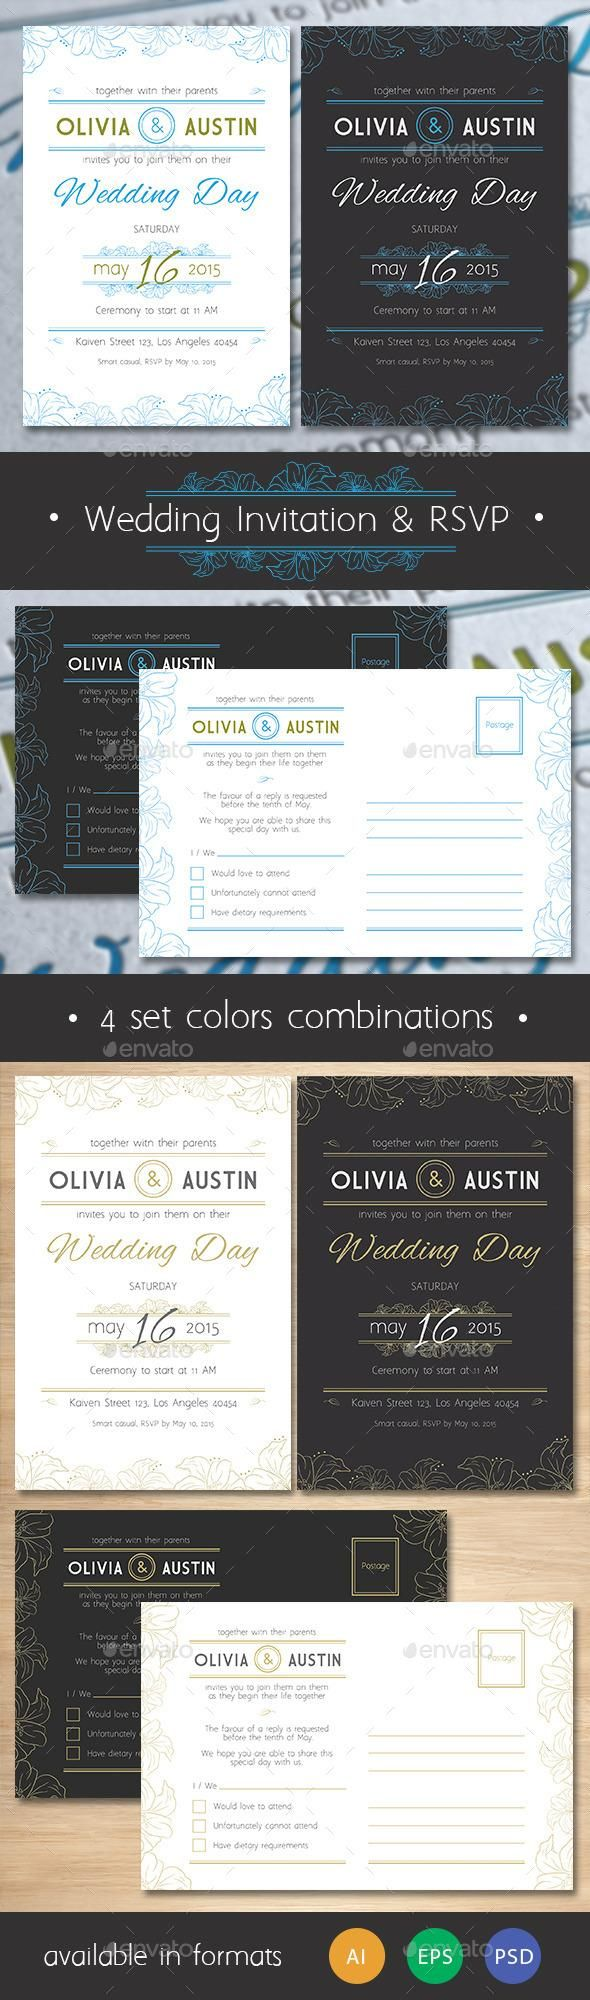 free wedding invitation psd%0A Vintage Wedding Invitation  u     RSVP